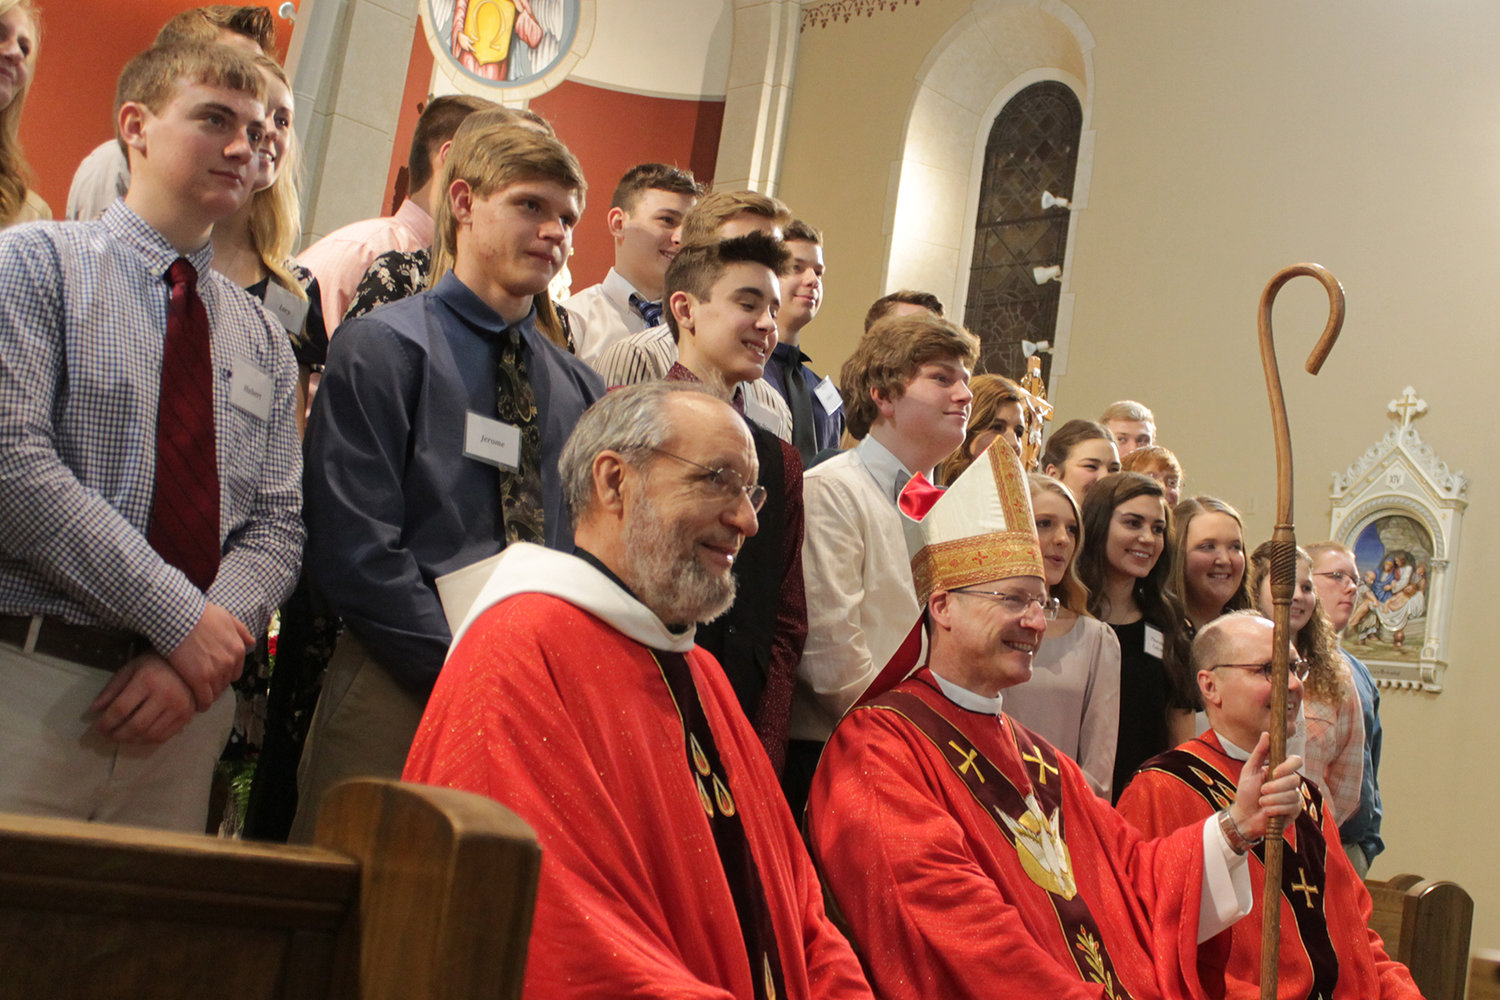 Bishop W. Shawn McKnight, along with Father James Finder and Father William Debo, join newly confirmed members of the Rich Fountain, Freeburg and Argyle parishes shortly after Bishop McKnight's installation in 2018.